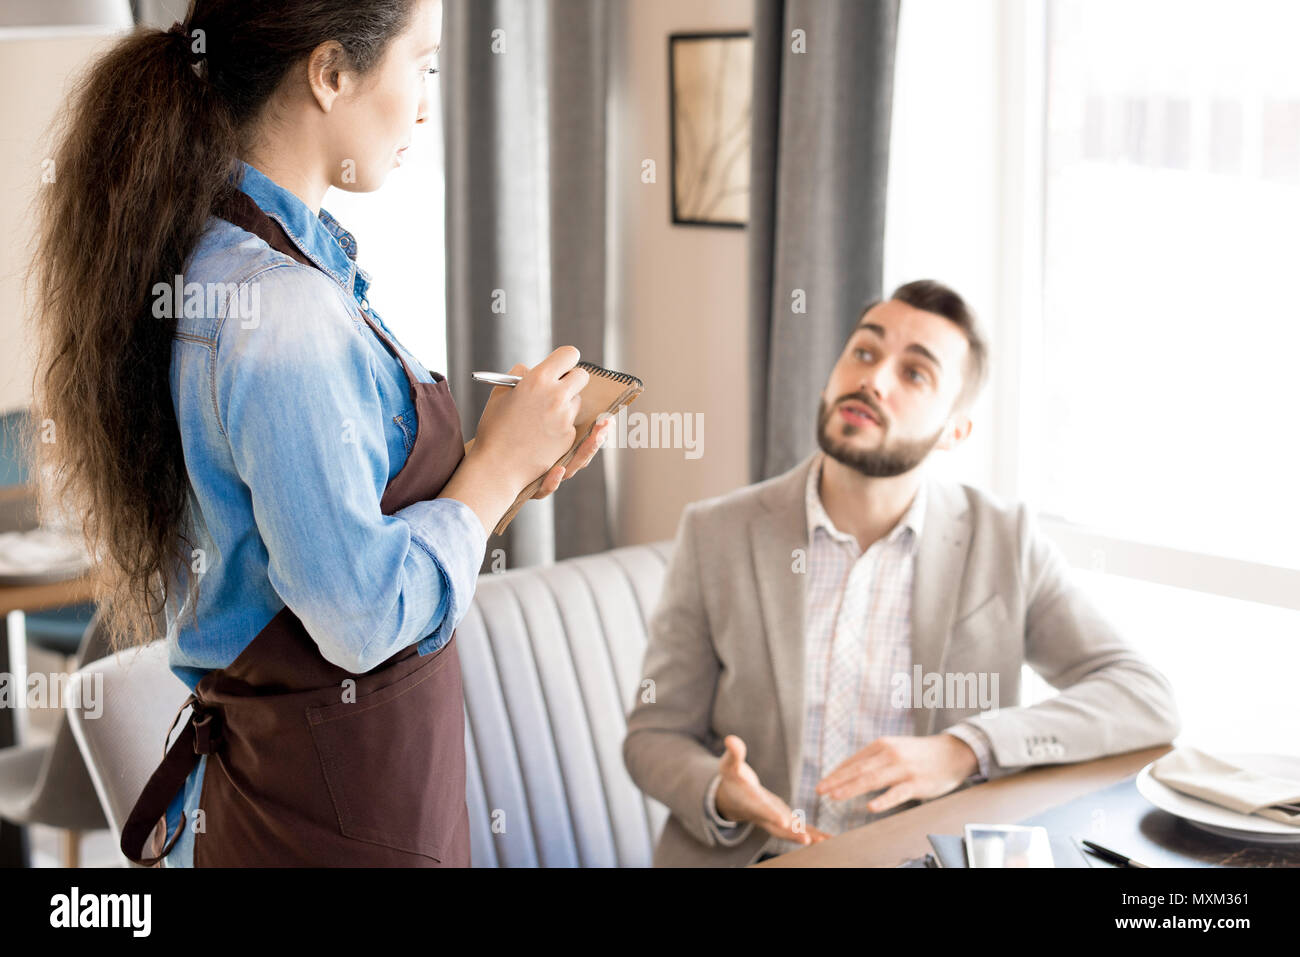 Man sharing his taste preference with waitress - Stock Image